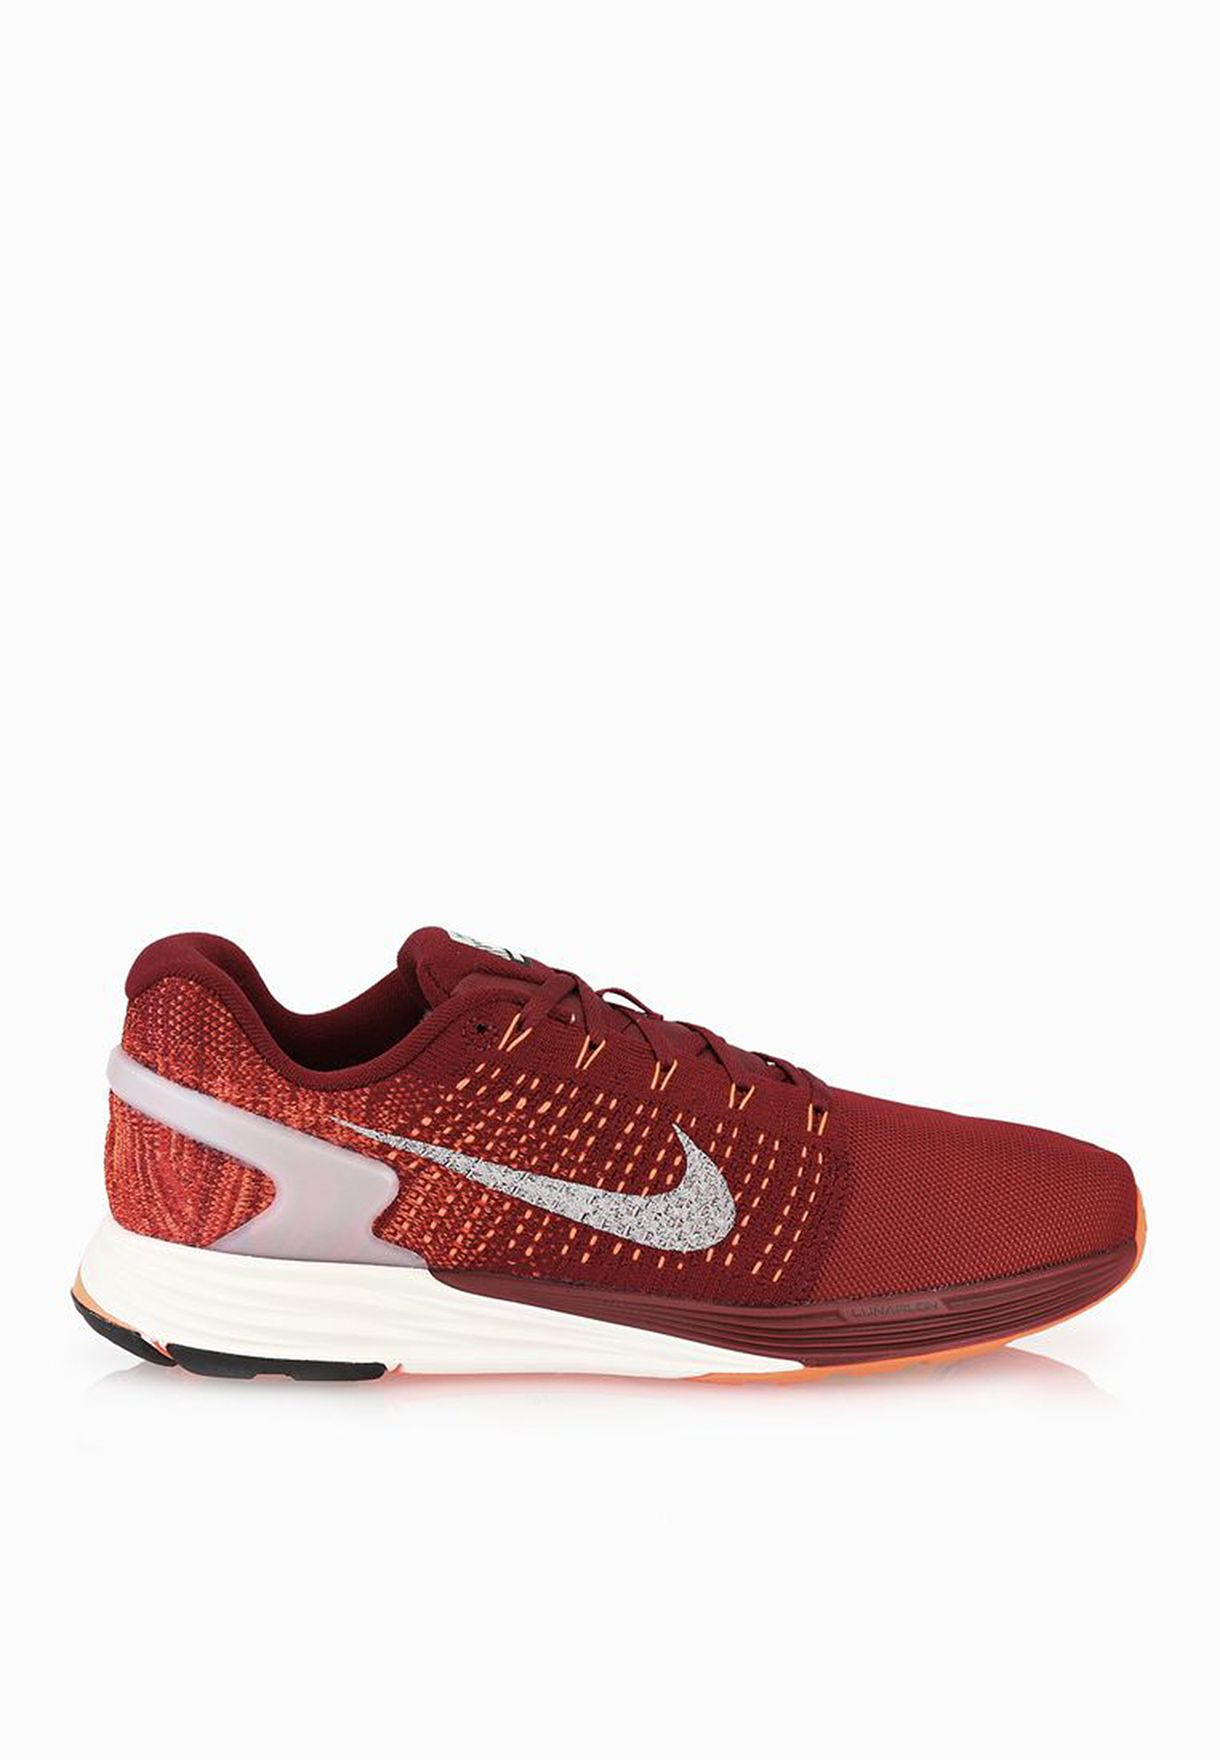 low priced 5da2a 6faca ... greece official store shop nike red lunarglide 7 flash 803566 600 for  men in uae ni727sh30pav